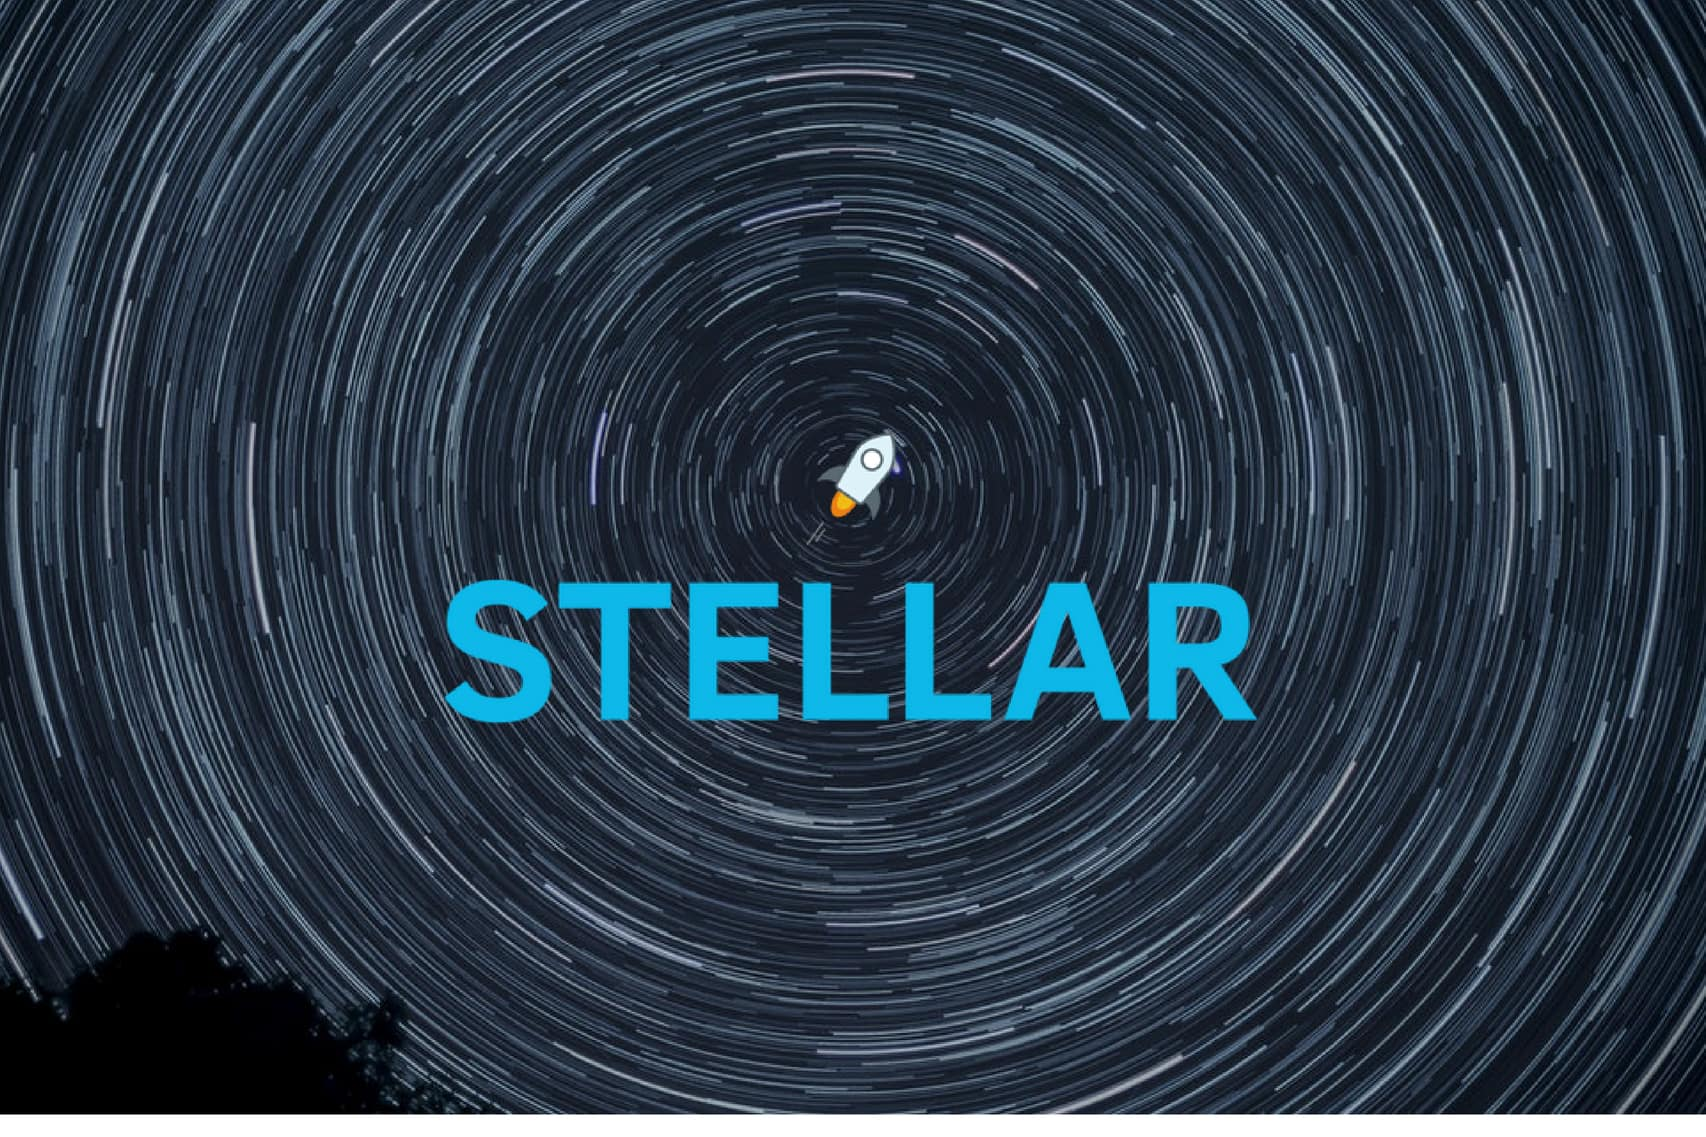 https://cdn.investinblockchain.com/wp-content/uploads/2018/08/Stellar_projects.jpg?x88891